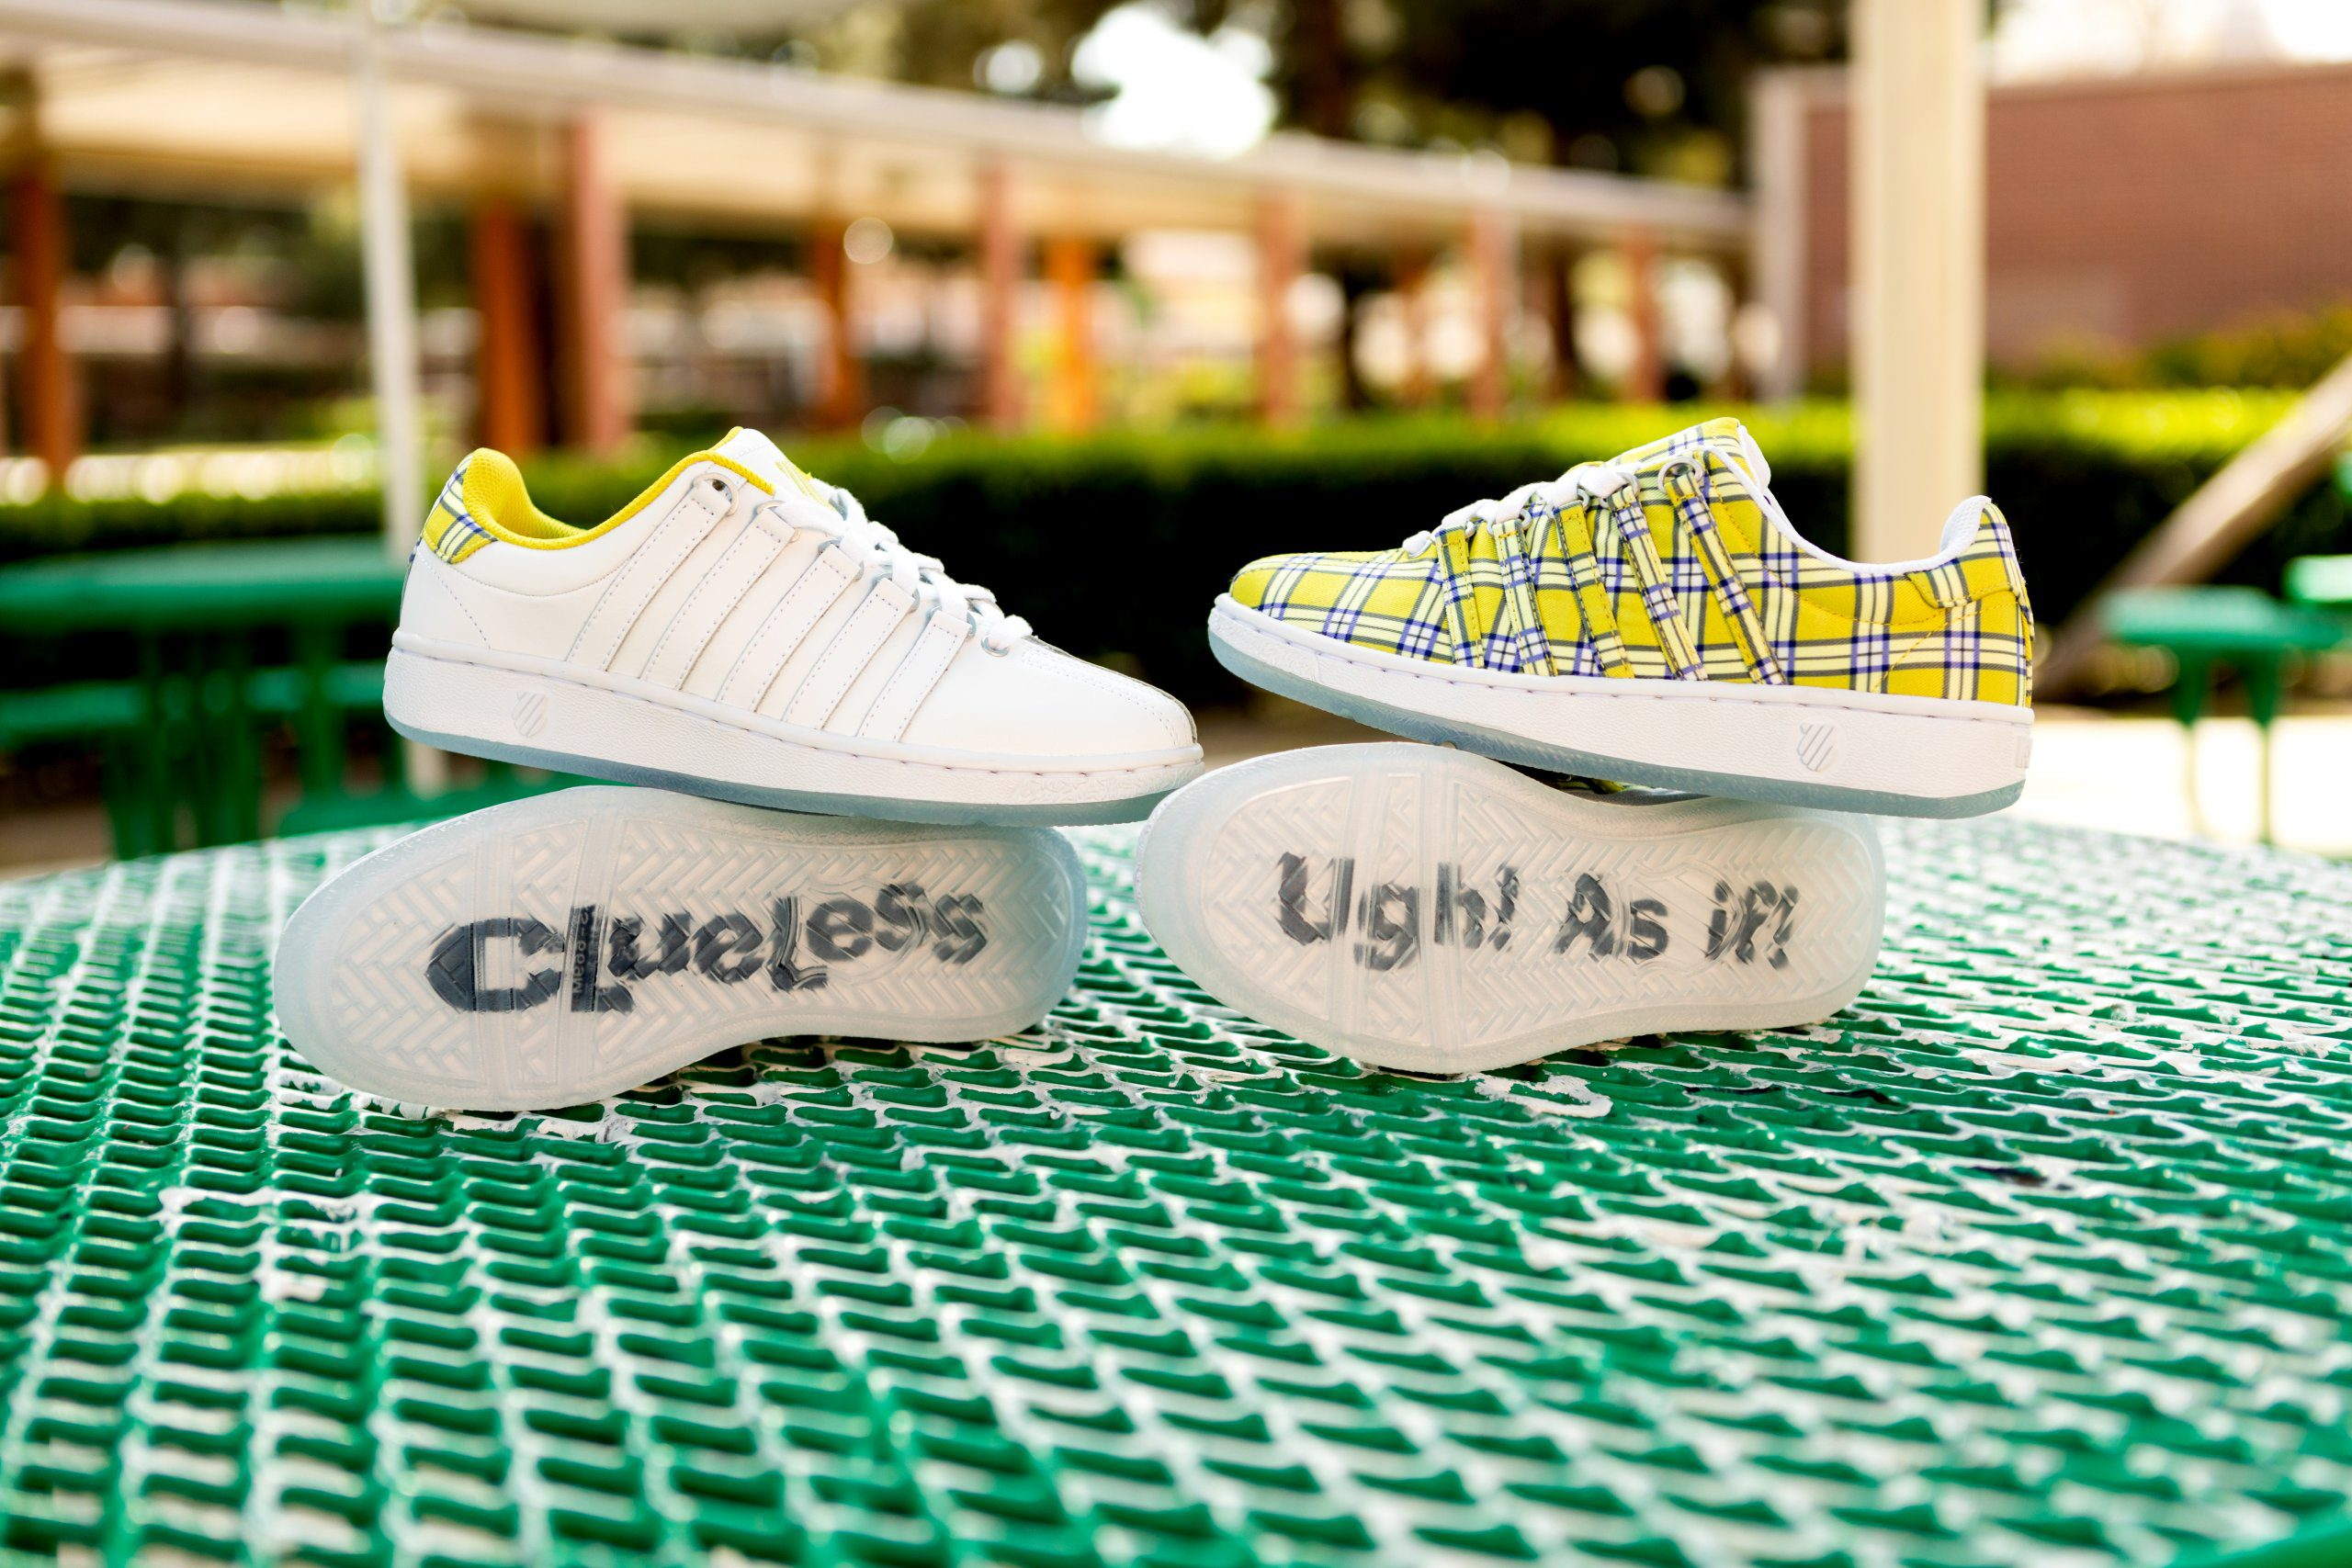 kswiss-clueless-product-print-7